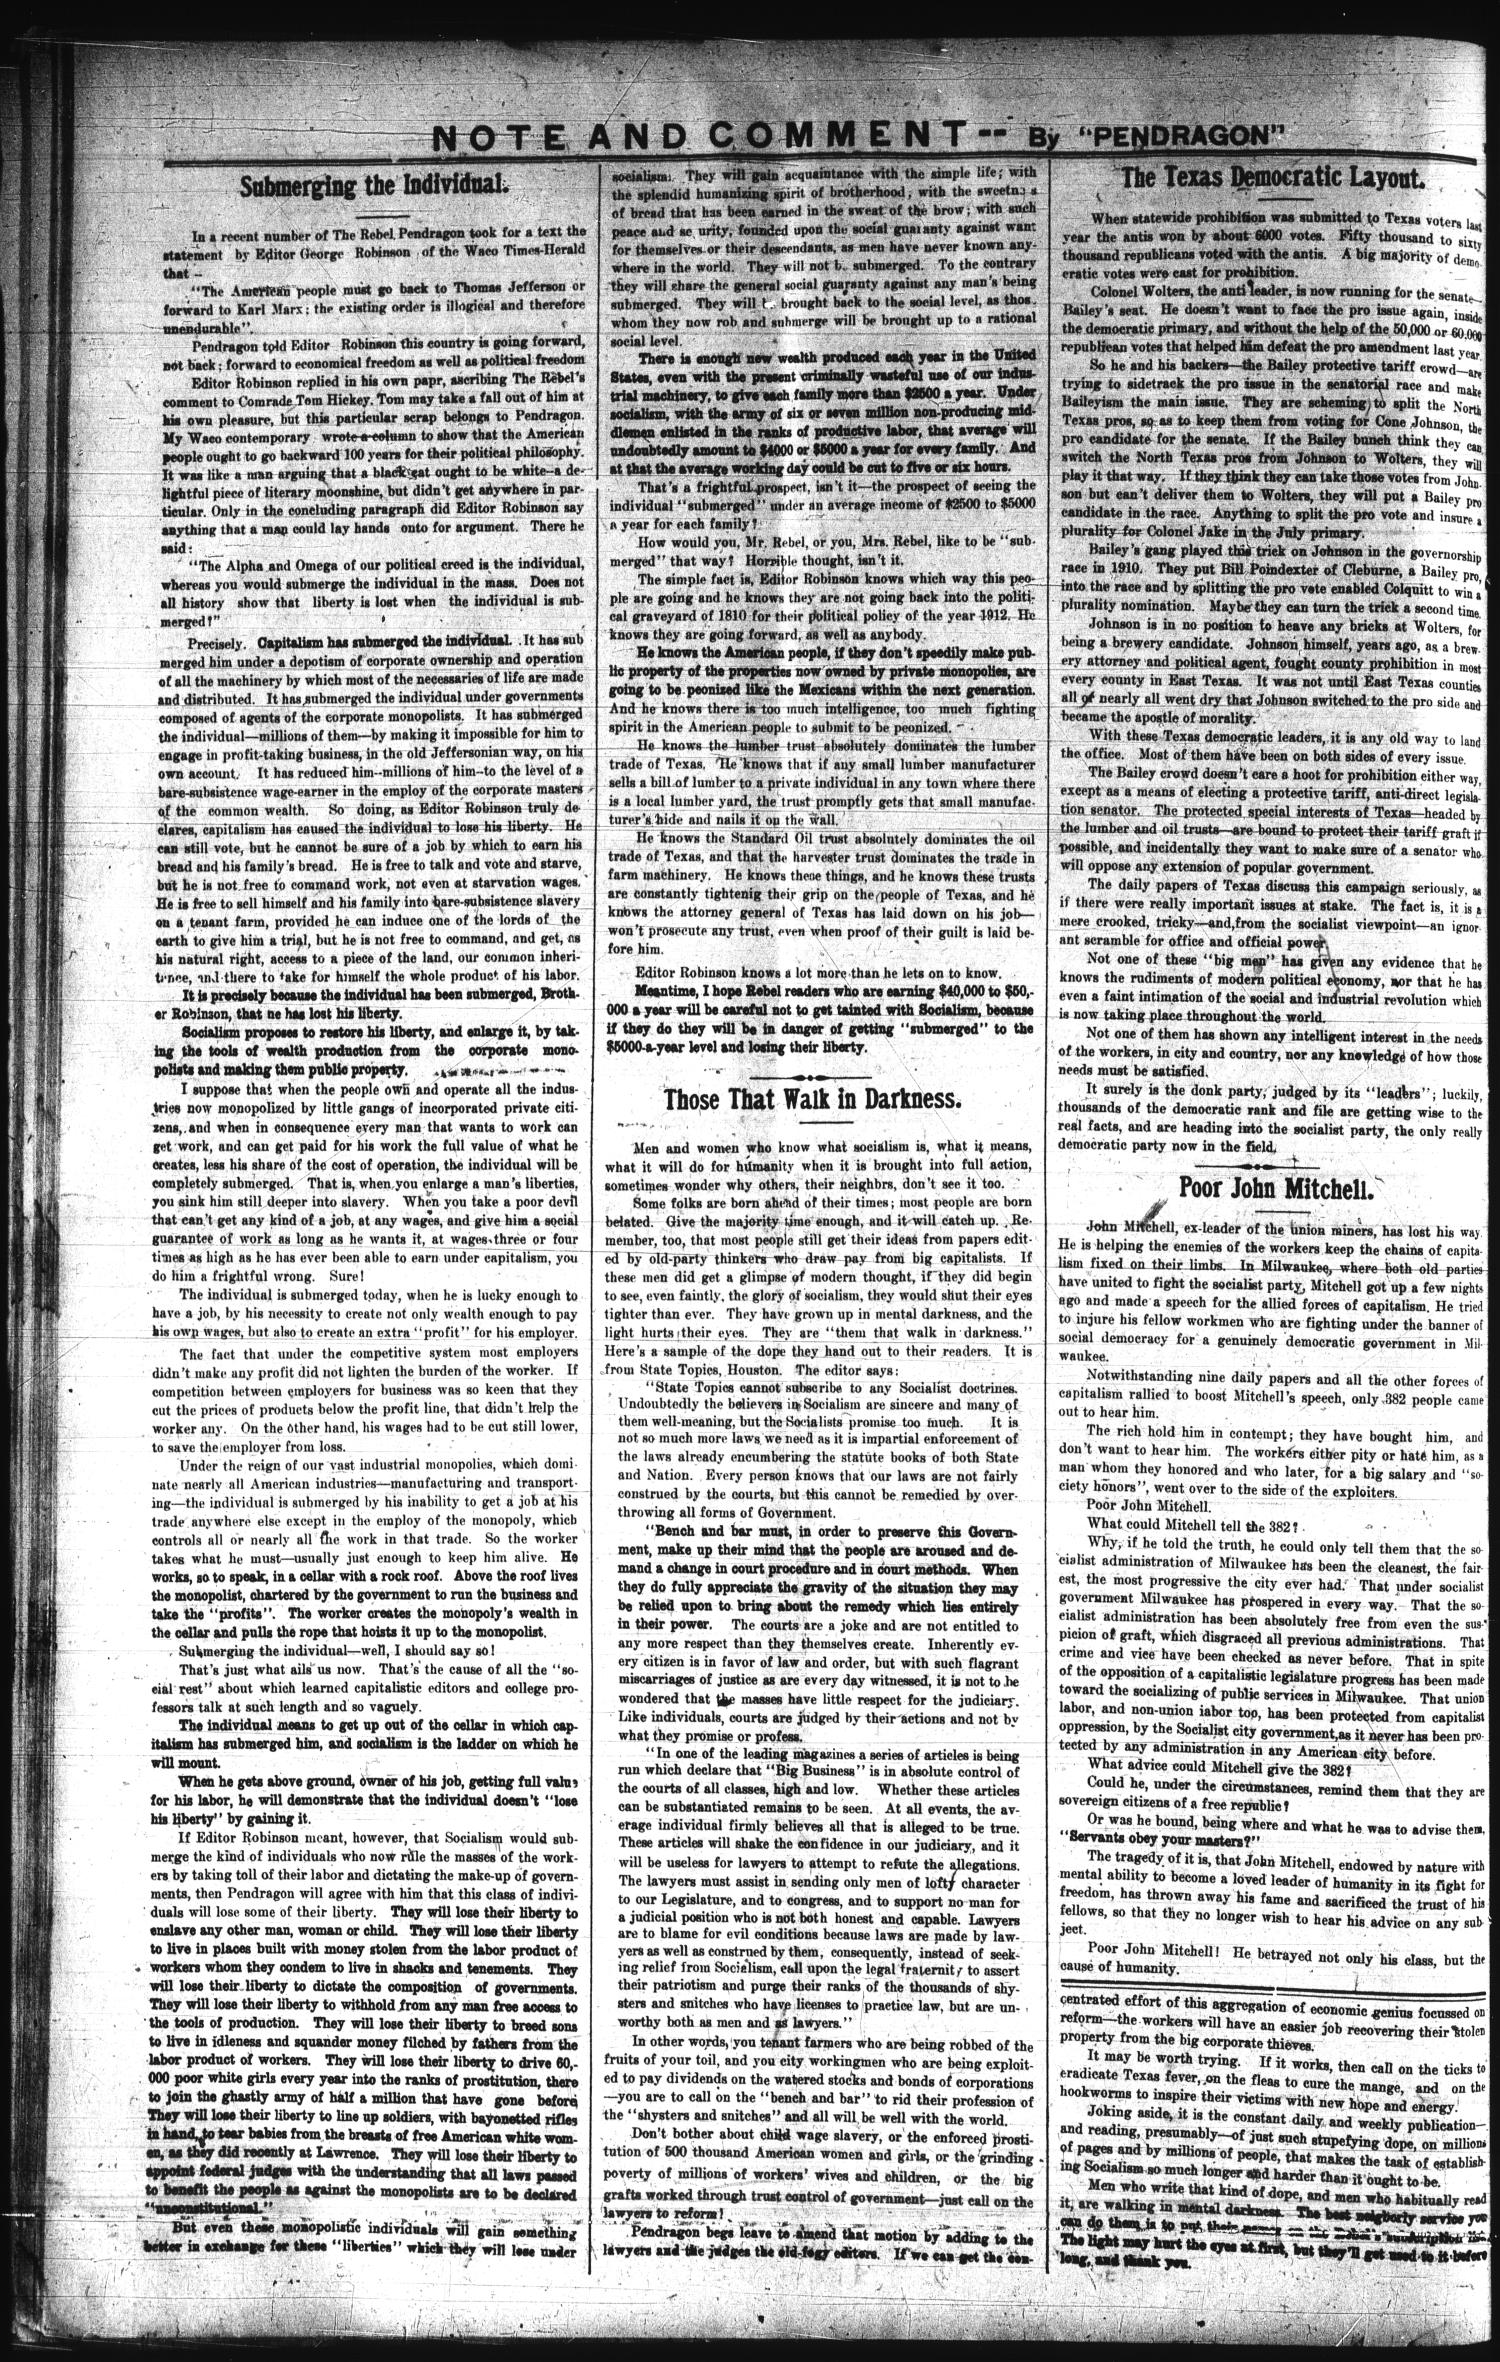 The Rebel (Hallettsville, Tex.), Vol. [1], No. 38, Ed. 1 Saturday, March 23, 1912                                                                                                      [Sequence #]: 4 of 4